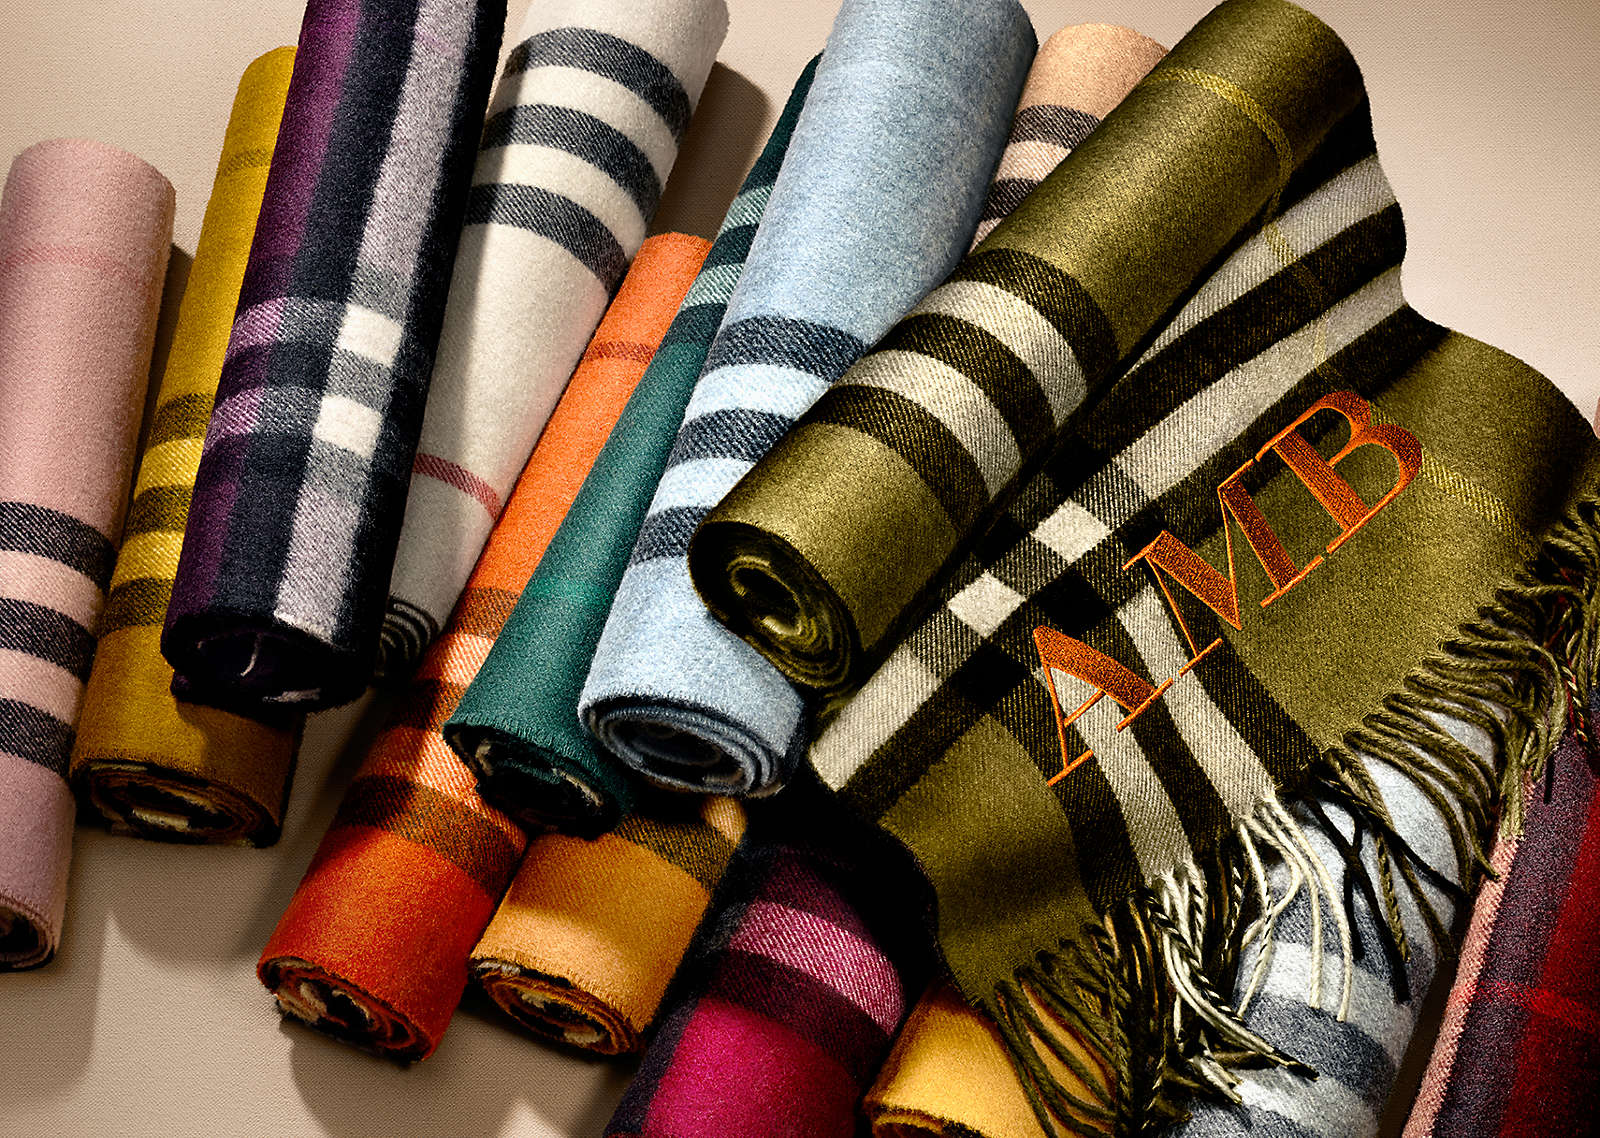 Burberry now offers customers the option to customize their scarves with their initials.  source: Burberry.com